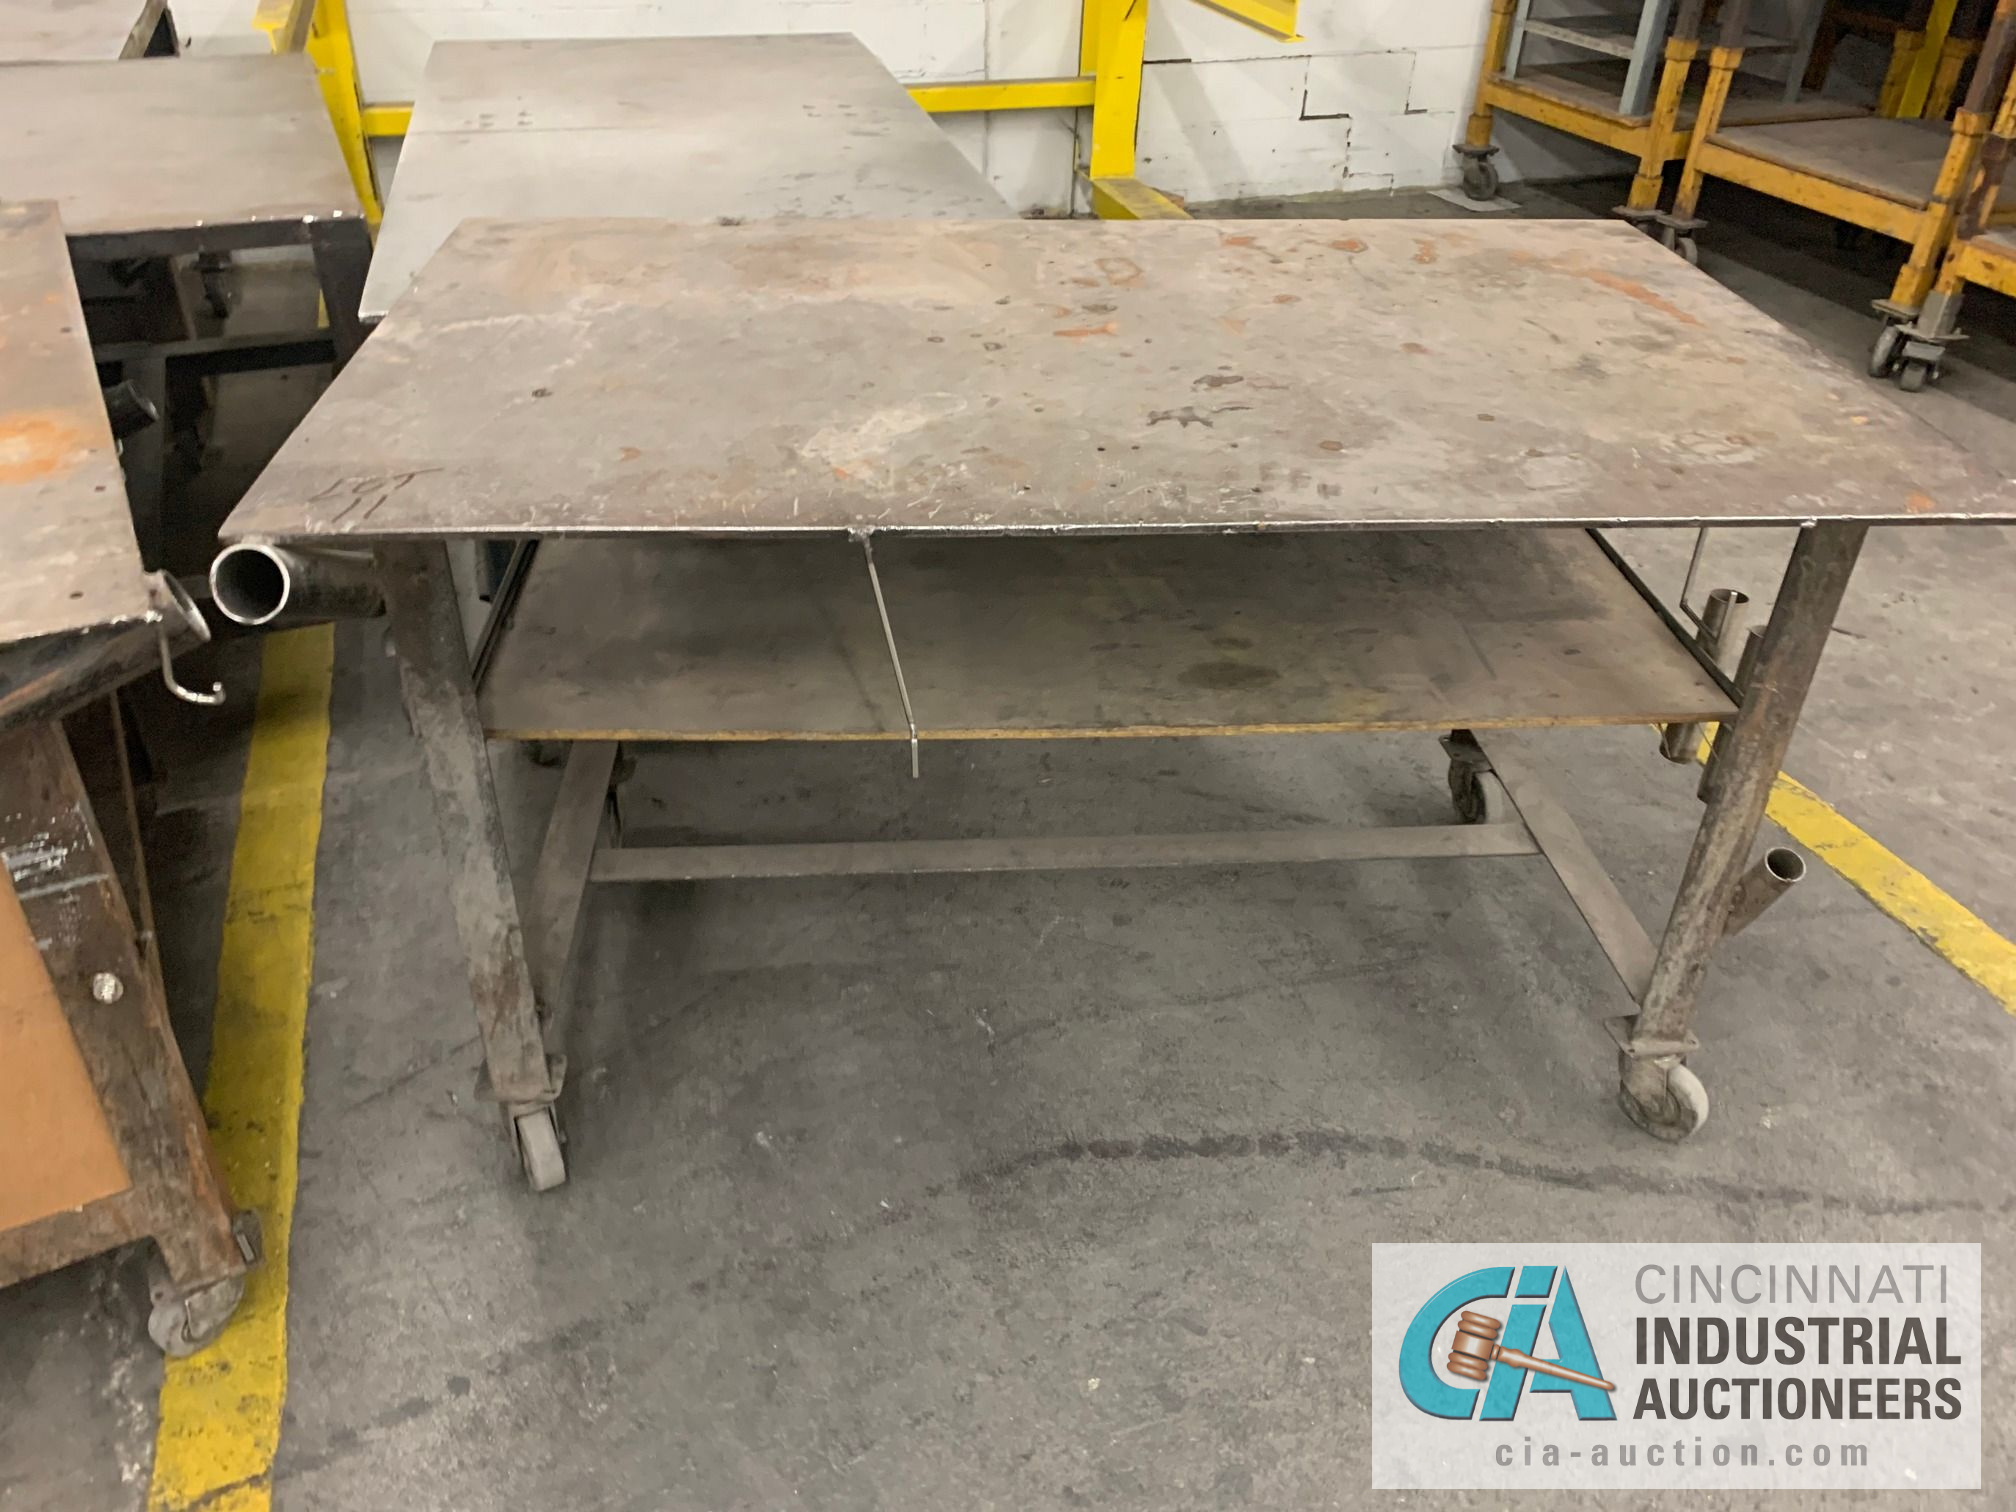 VARIOUS HEAVY DUTY CARTS, SOME SET-UP TO BE HEAVY WELD TABLES - Image 4 of 5